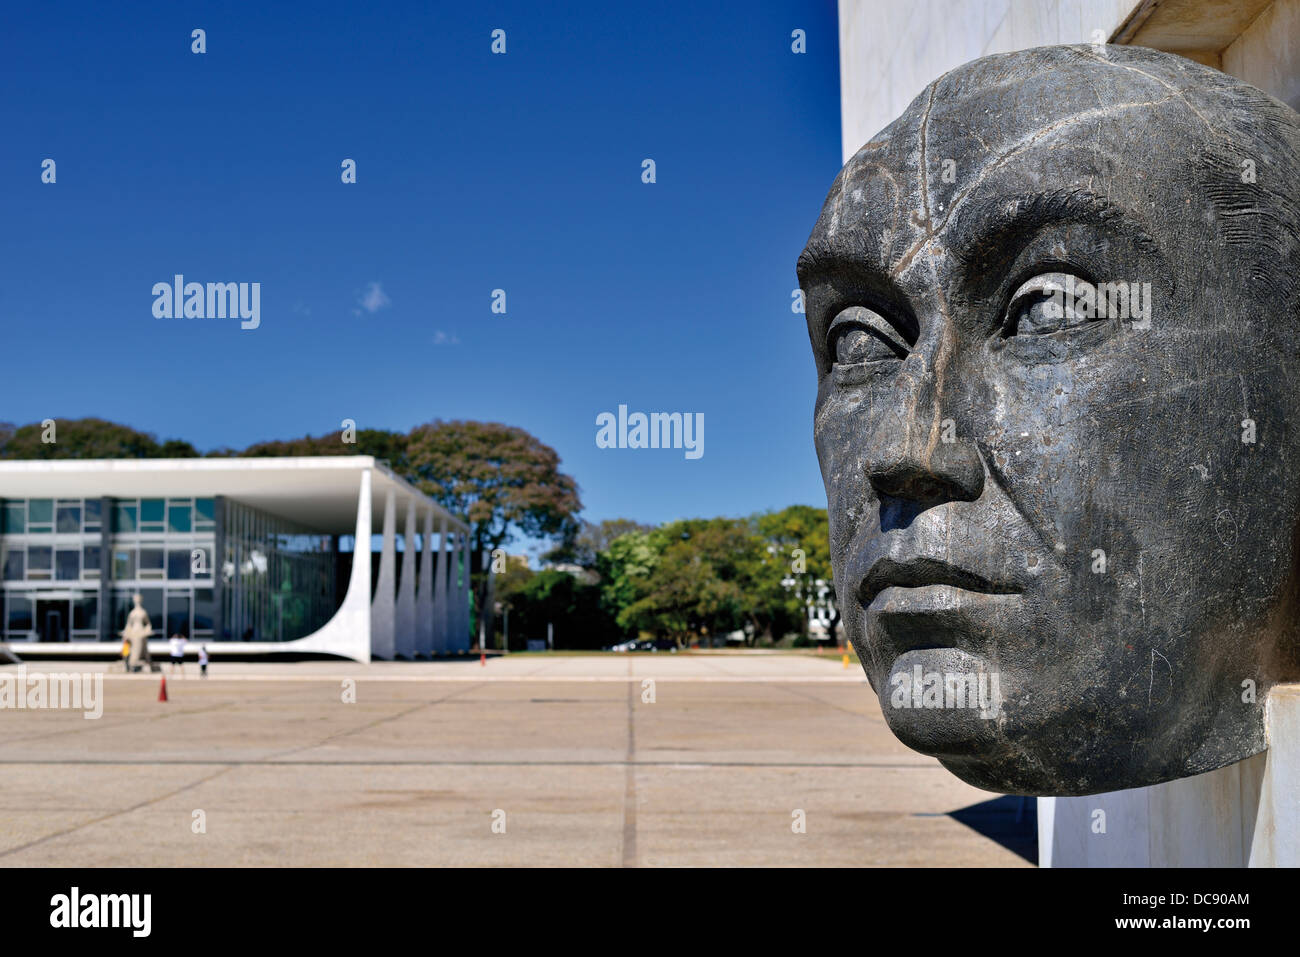 Brazil, Brasilia: Bust in homage of initiator and founder of the brazilian capital Brasilia at the Praca dos Tres - Stock Image